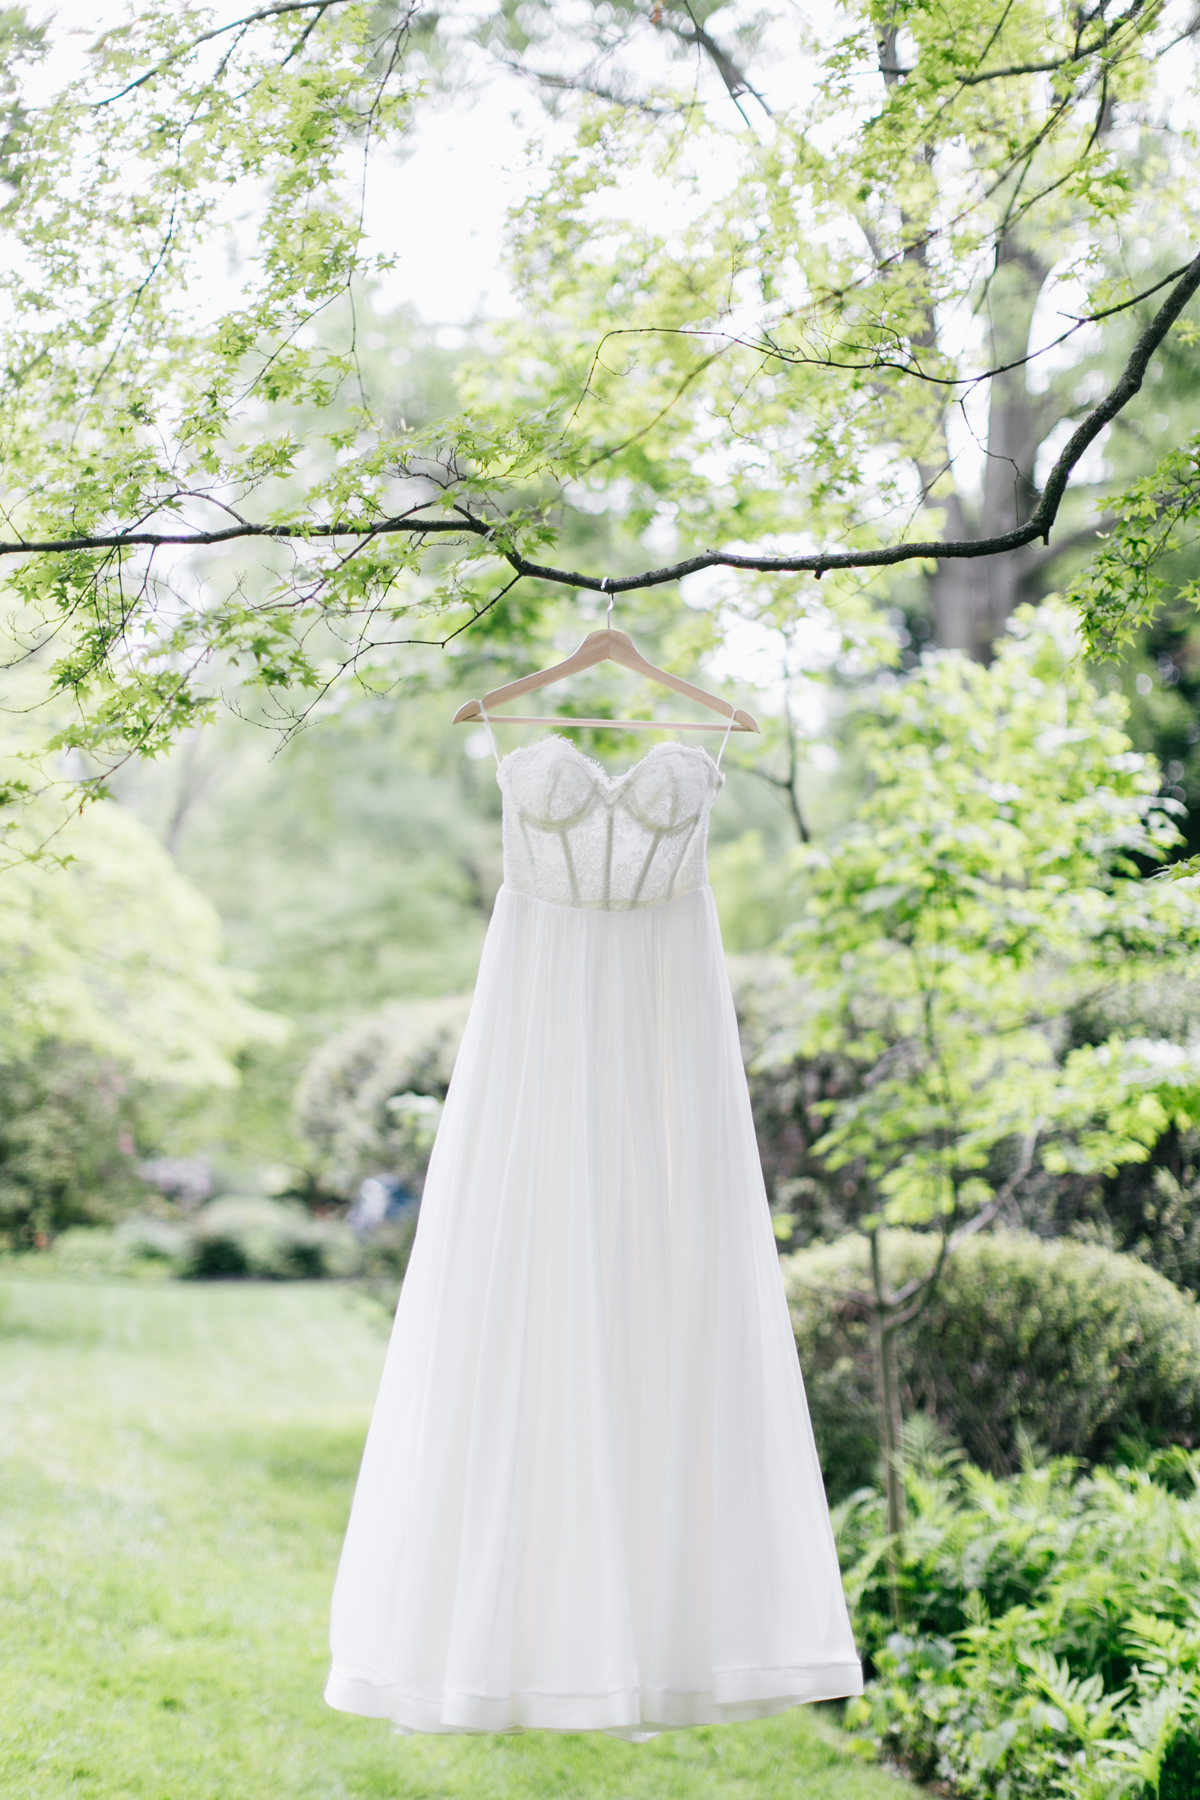 Leanne Marshall wedding gown hanging from a tree